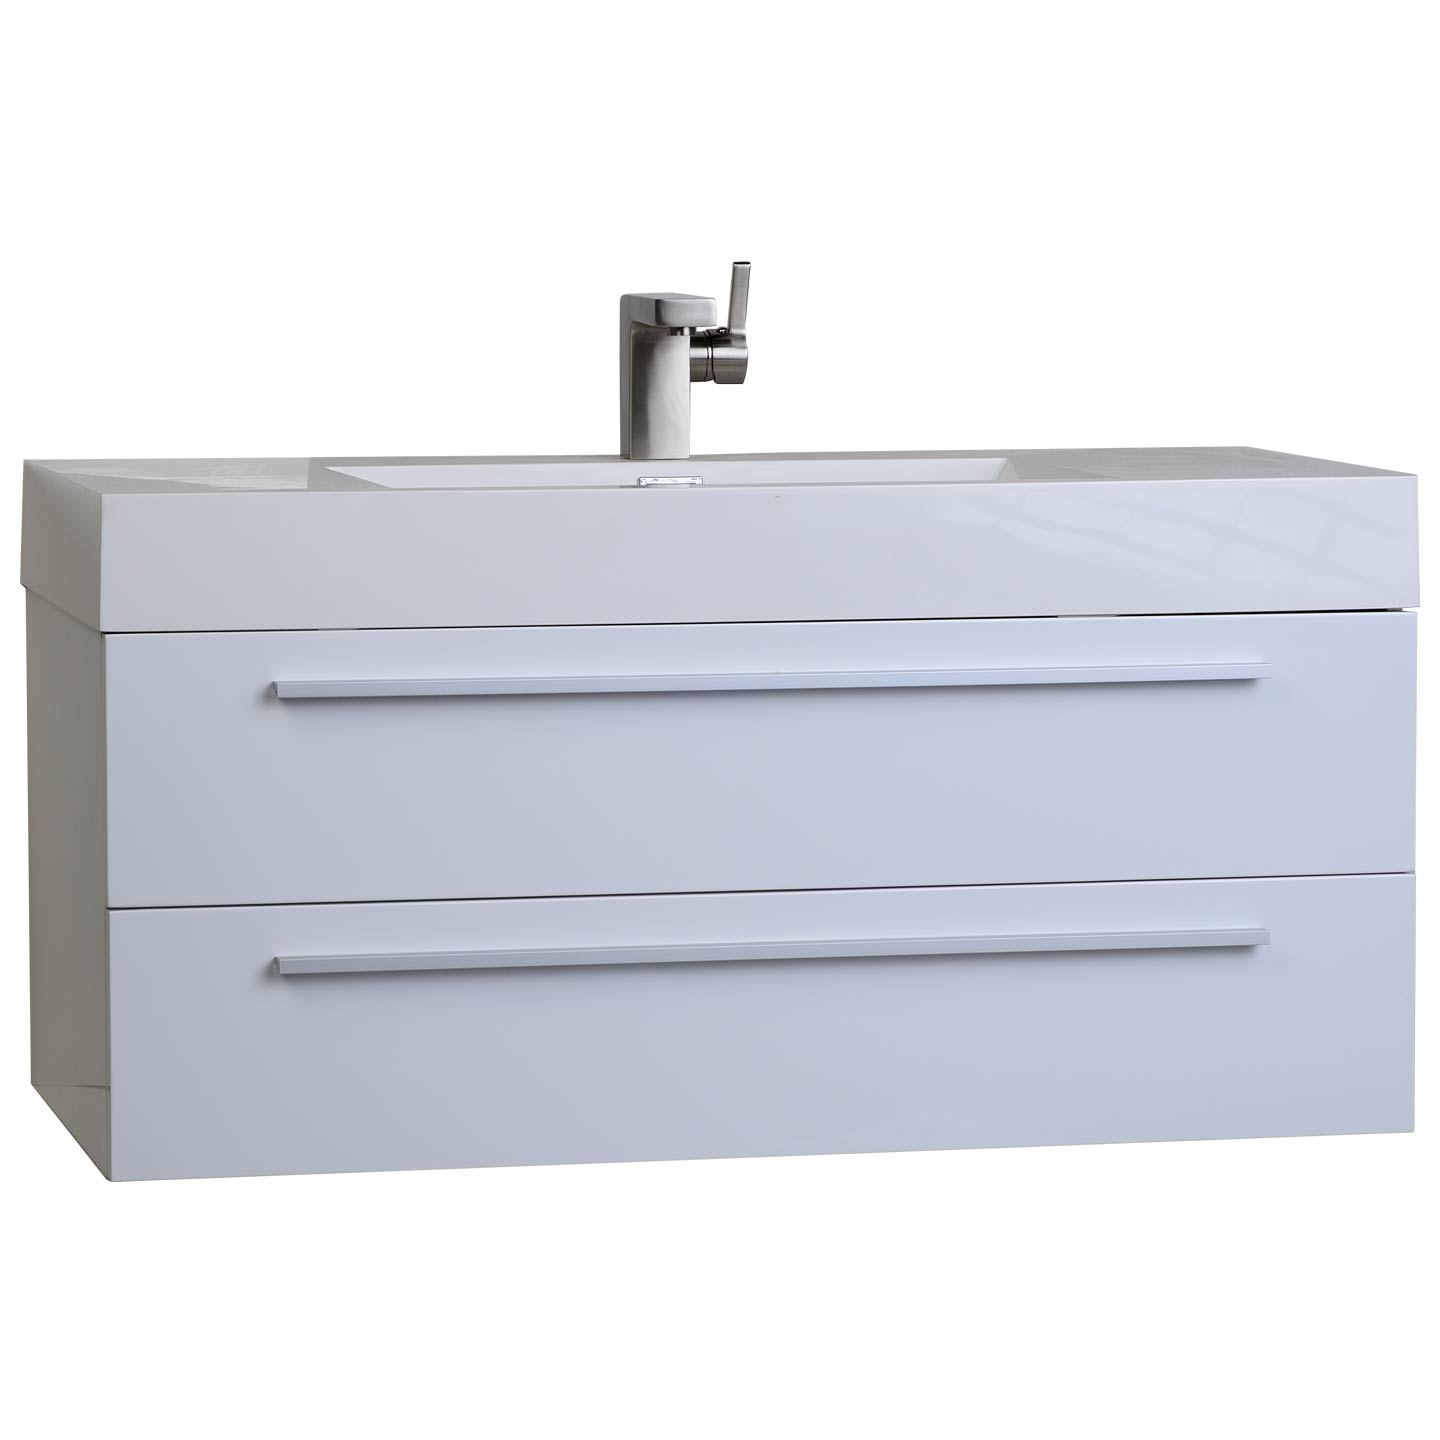 35 5 in wall mount modern bathroom vanity in high gloss white tn m900 hgw - Contemporary european designer bathroom vanities ...